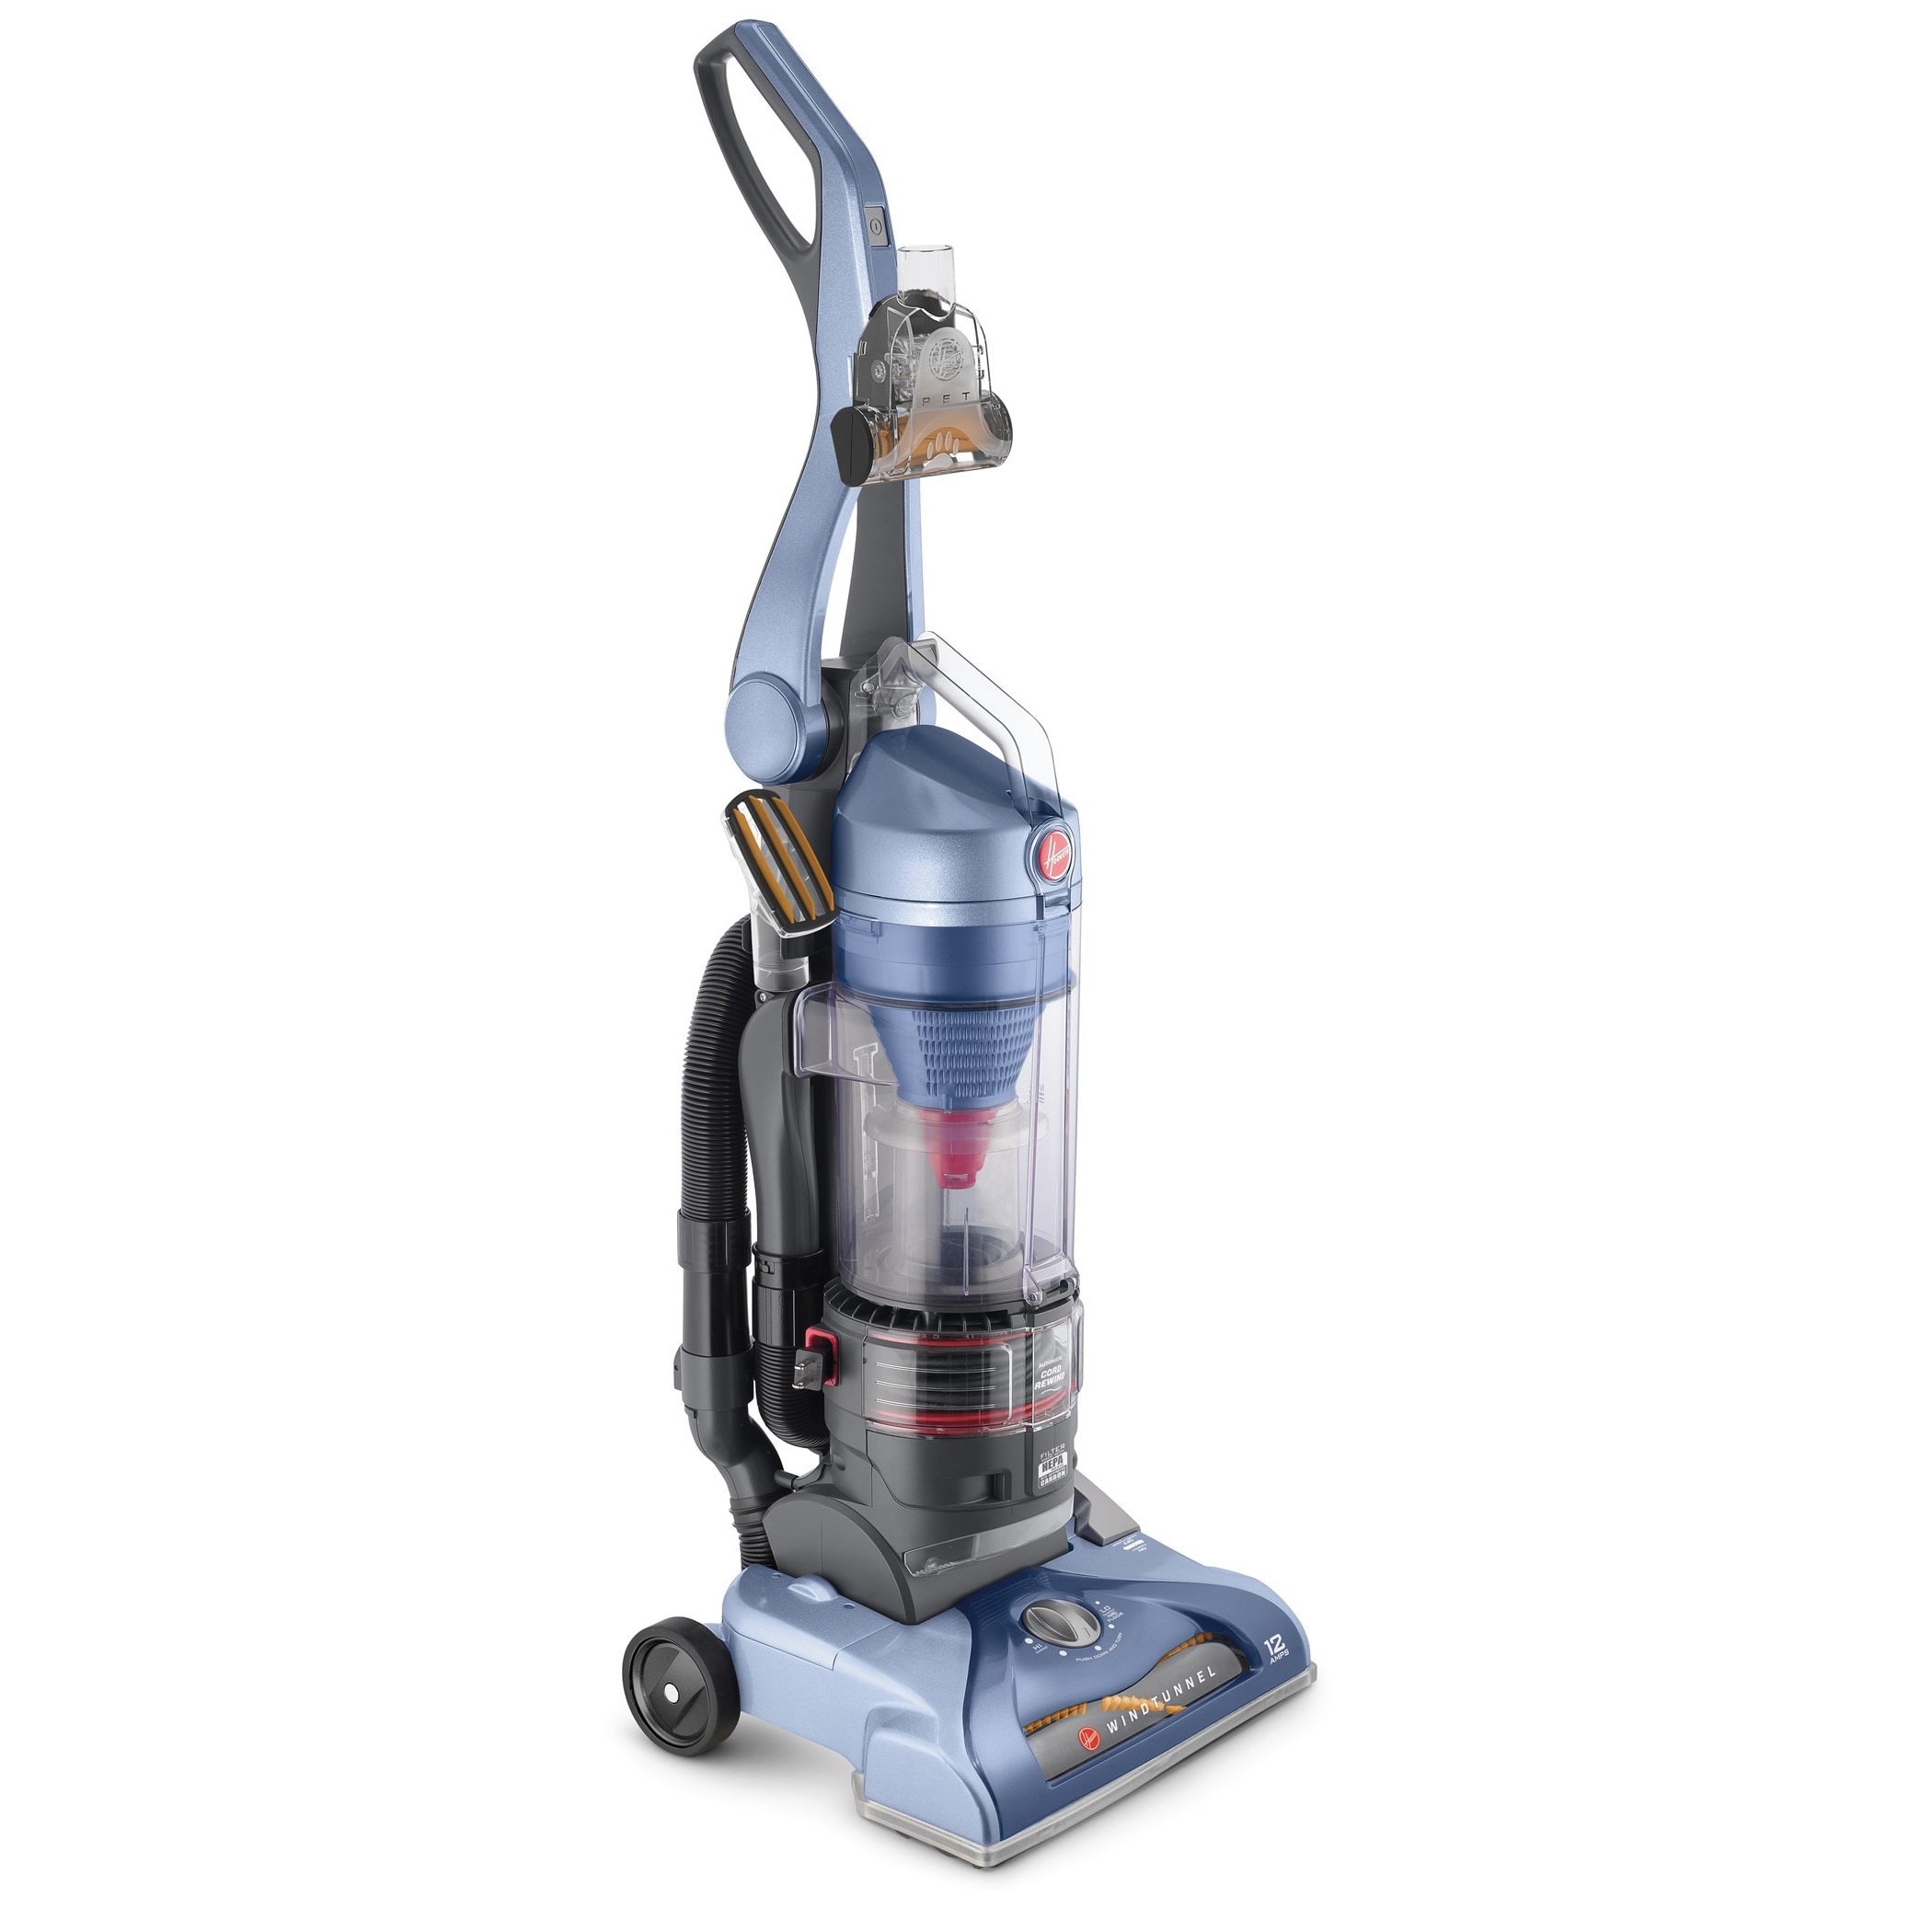 Hoover WindTunnel Pet Rewind Bagless Upright Vacuum, UH70210 - Walmart.com